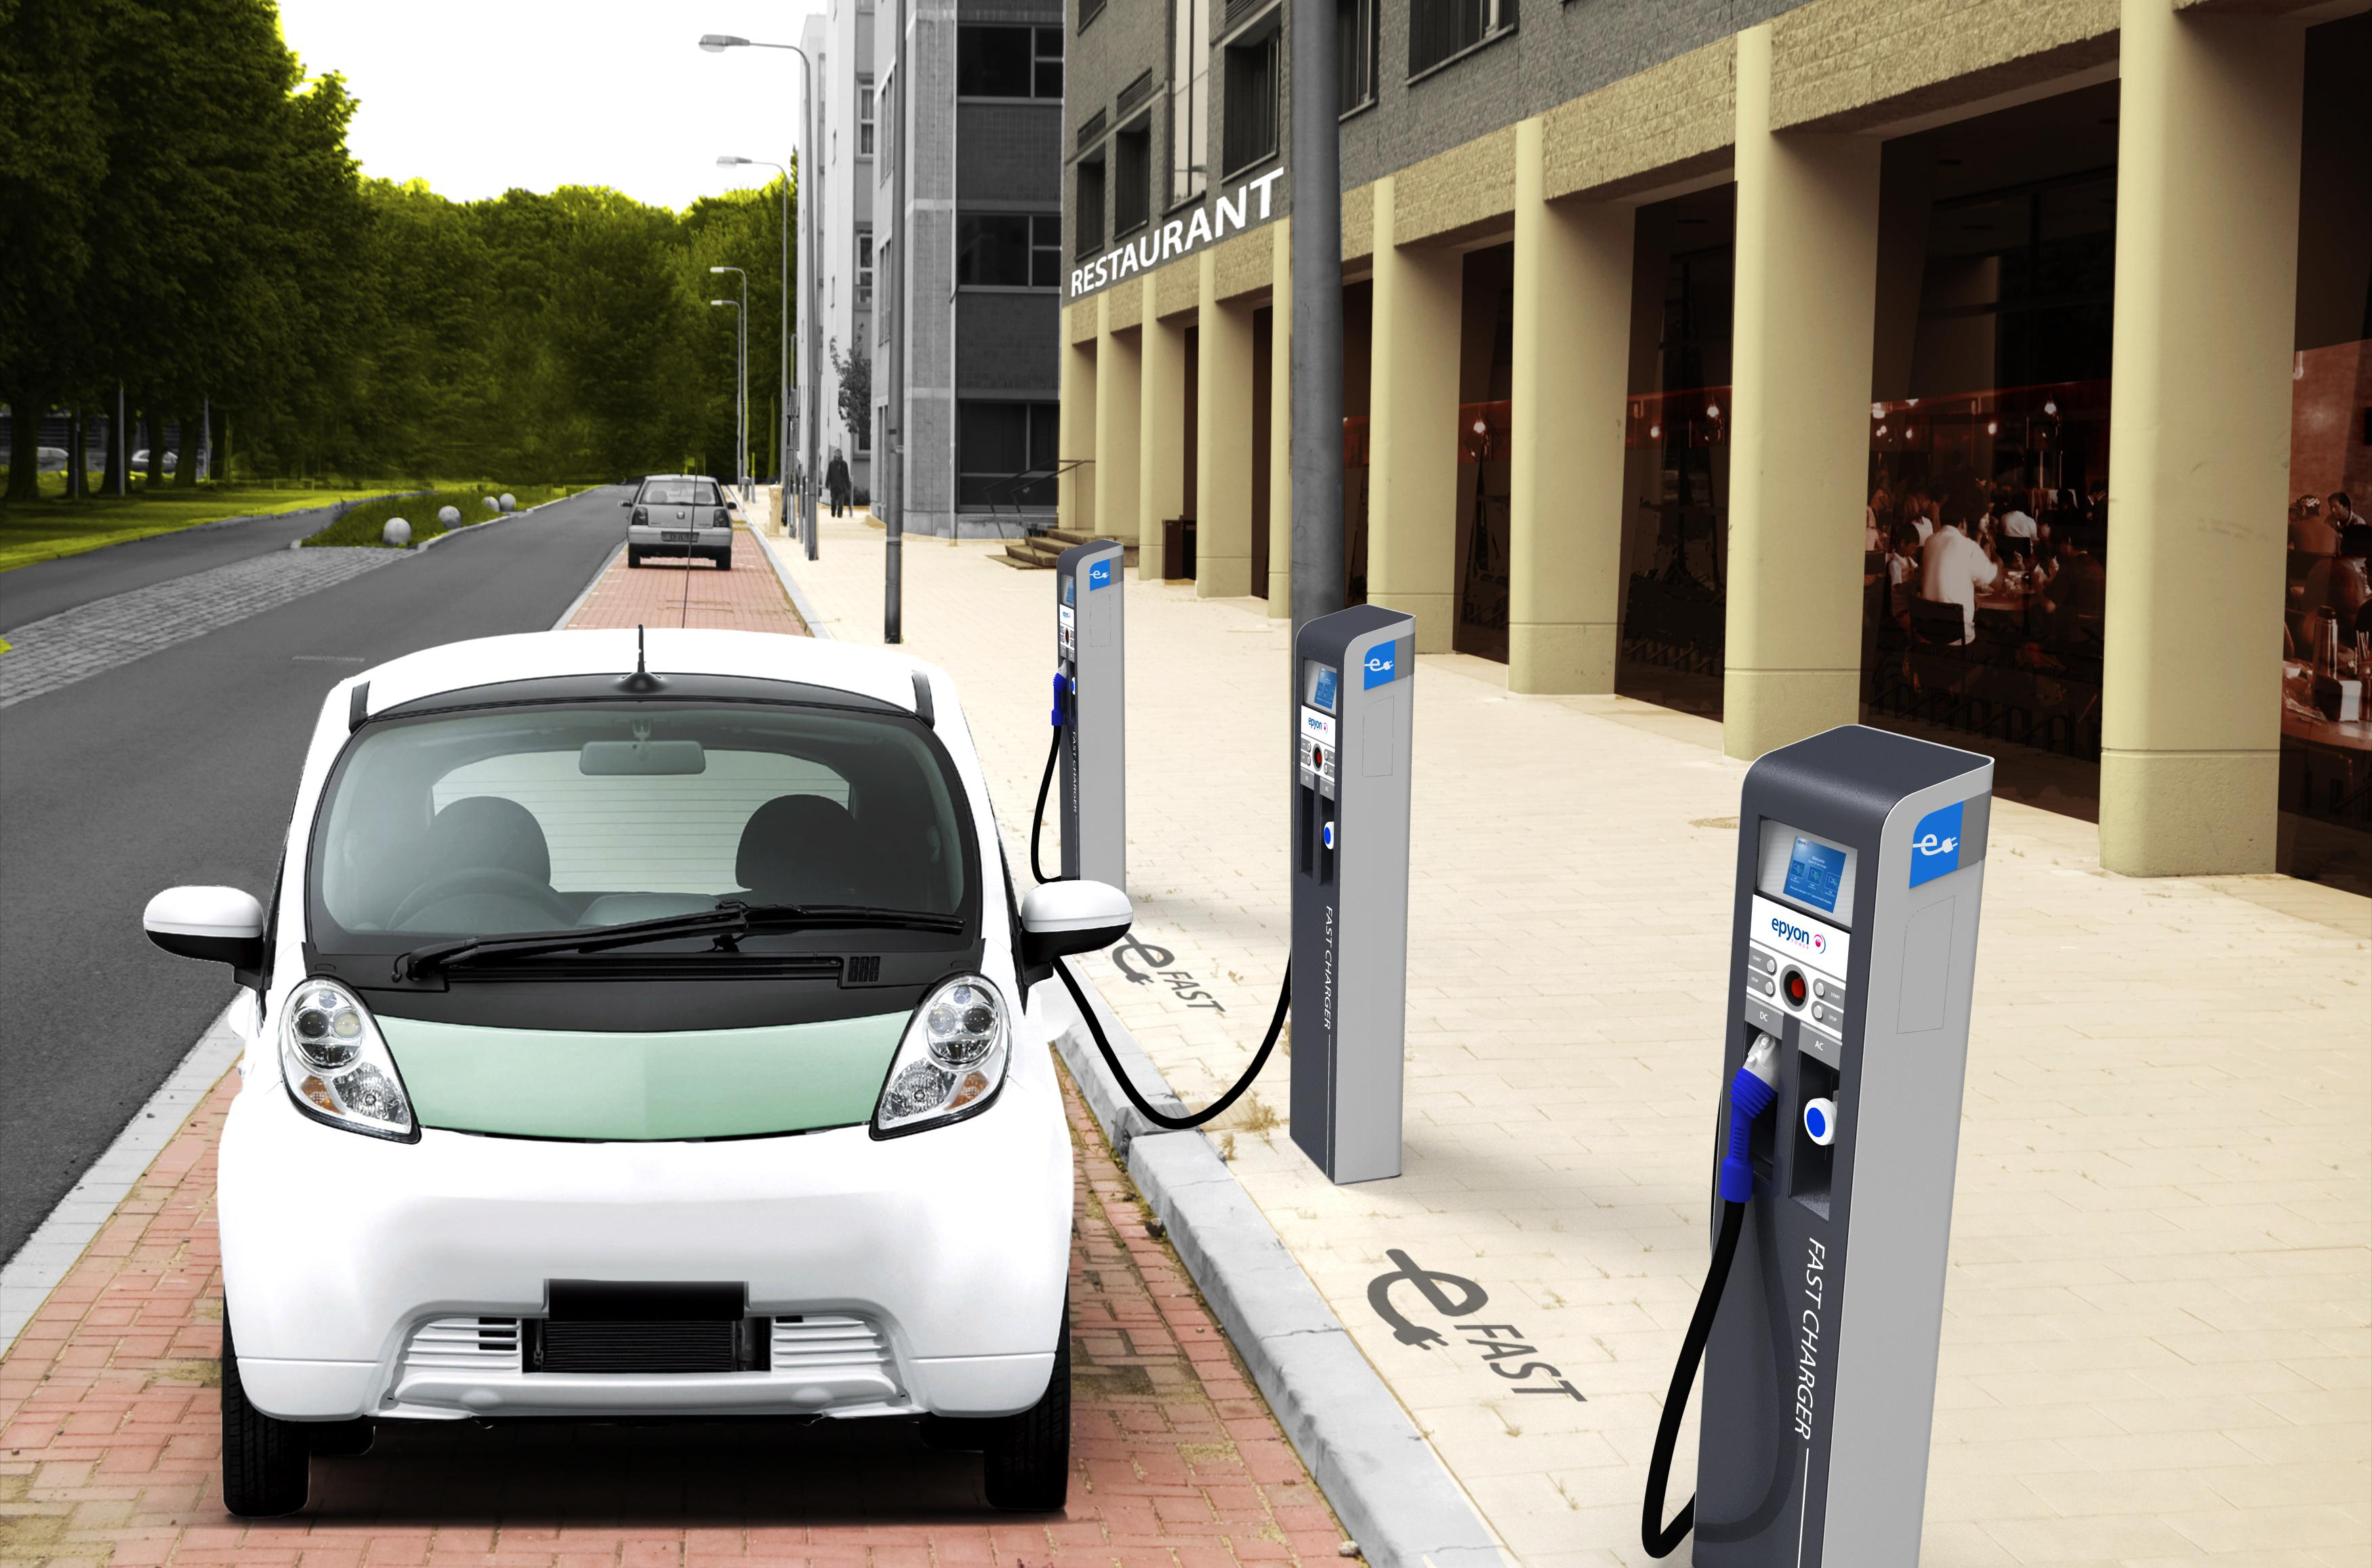 Electric Vehicle Charging Services Market Analysis, Research, Share, Growth, Sales, Trends, Forecast by 2028